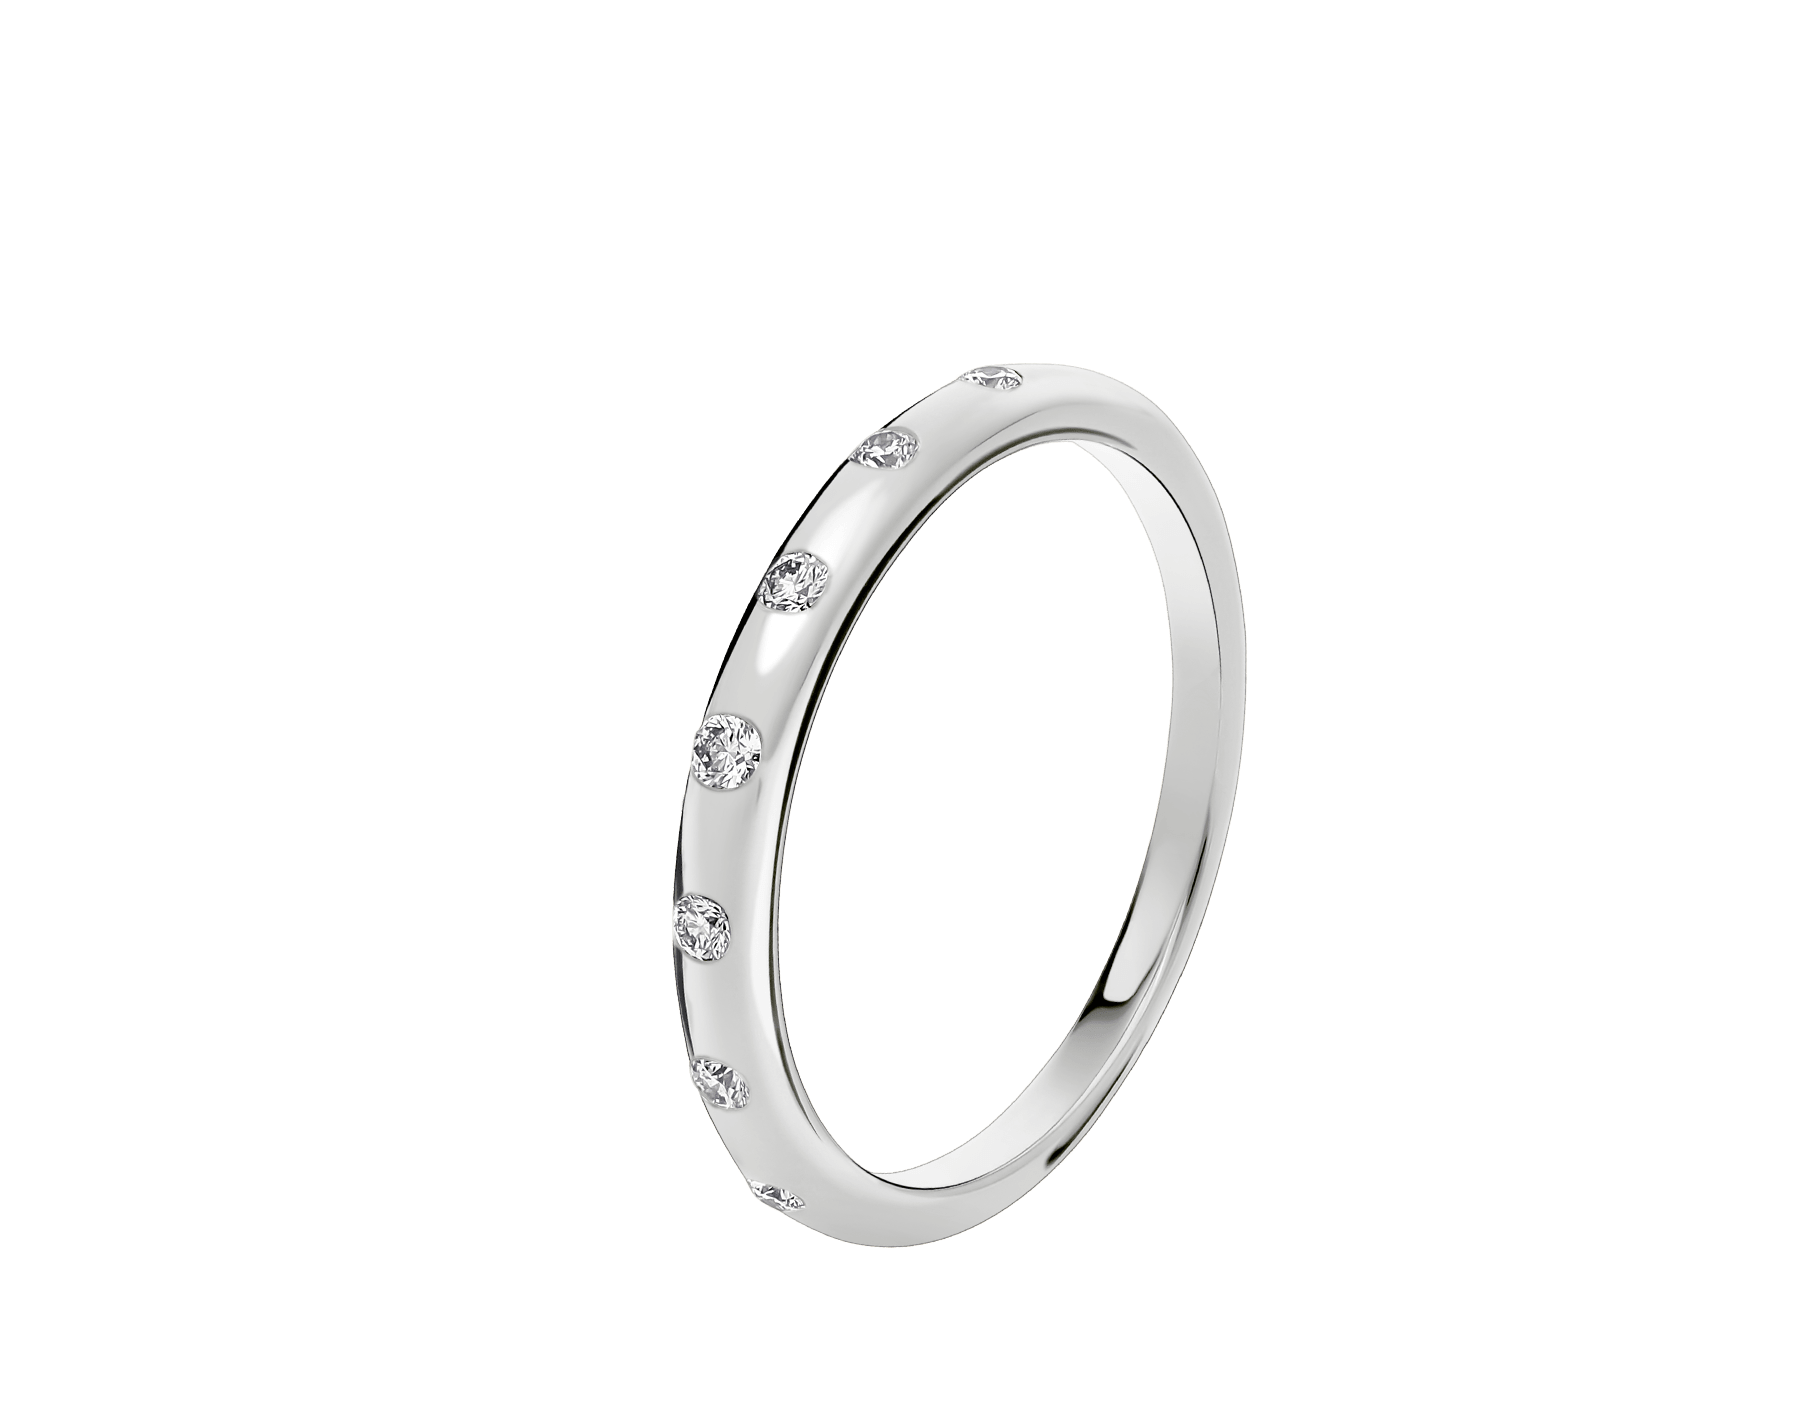 Fedi Wedding Band in platinum set with seven diamonds AN214704 image 1